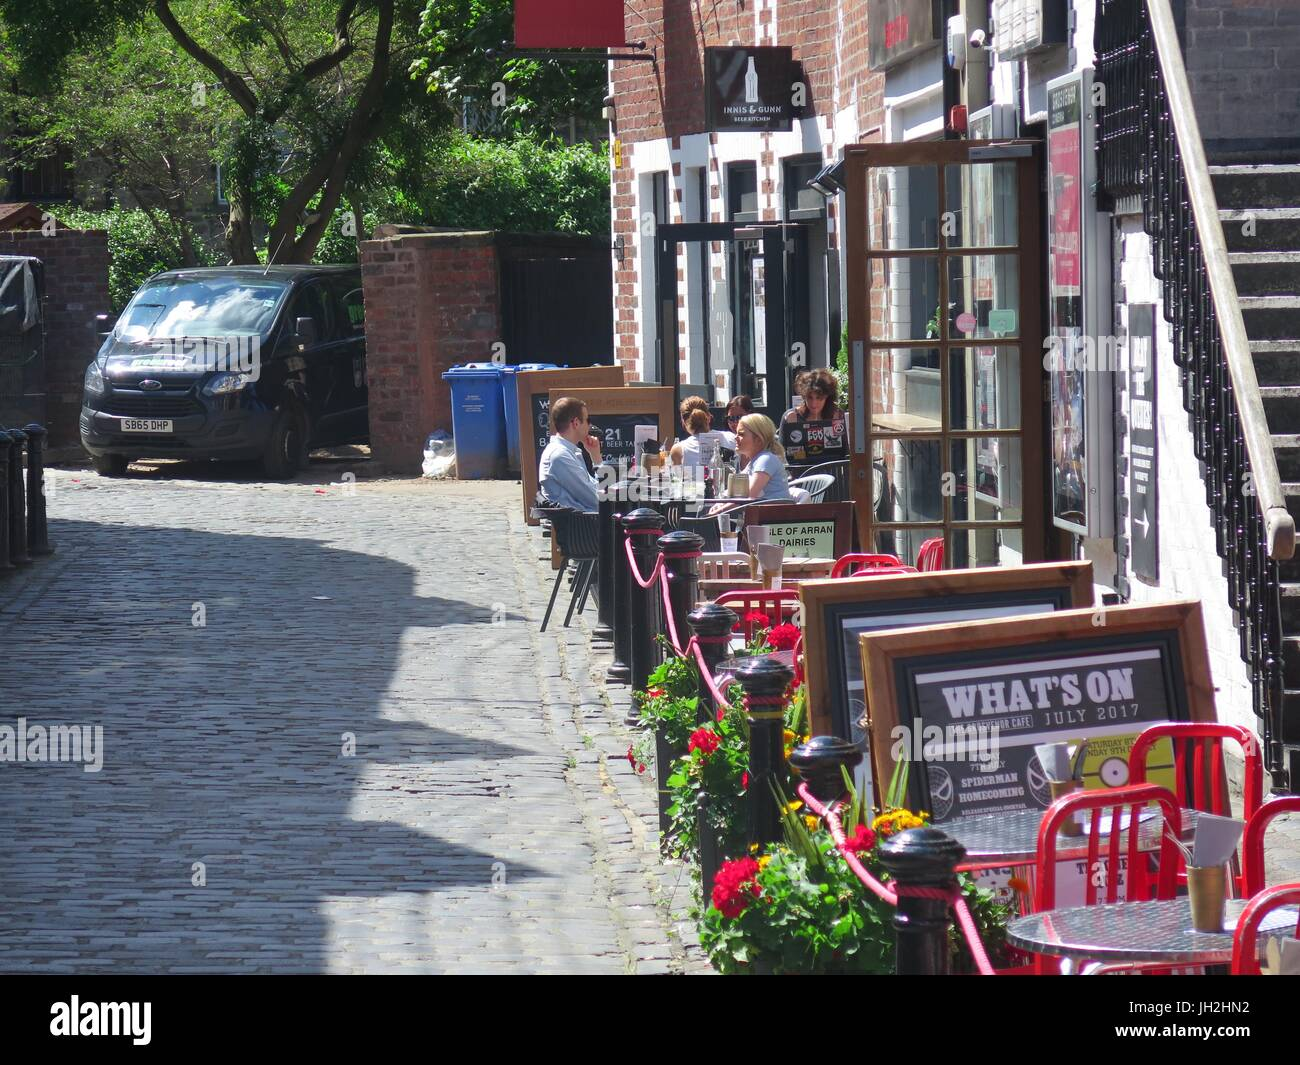 Glasgow West End Lilybank Gardens and Ashton Lane 12 July 2017. A nice sunny lunchtime for Glasgow University students - Stock Image